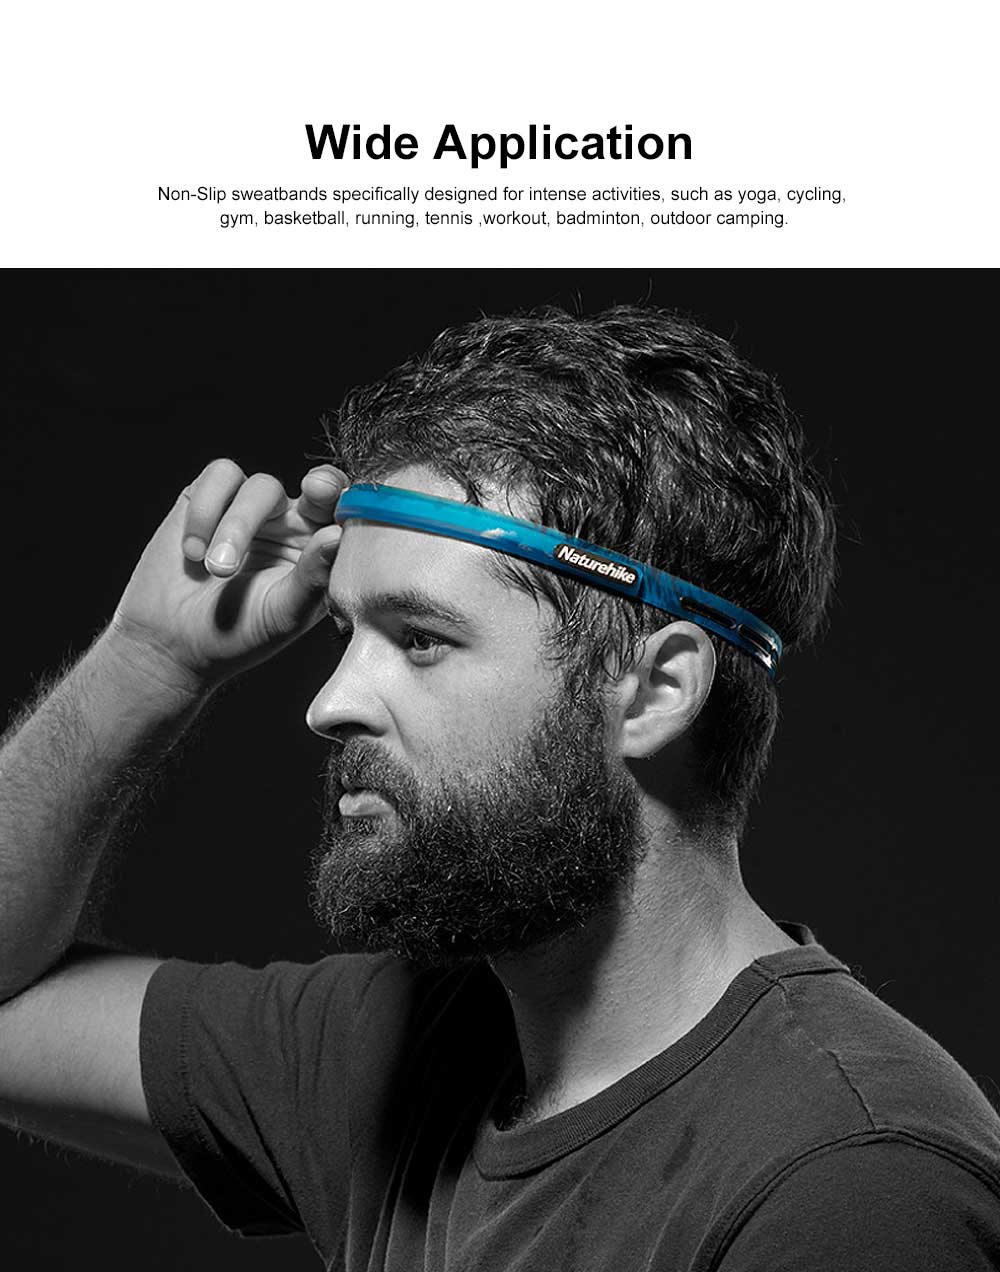 Sweatband Sport Headband, Non Slip Silicone Head Bands for Yoga Running Cycling Tennis, Outdoor Working Out Gym Headwear Accessories 1